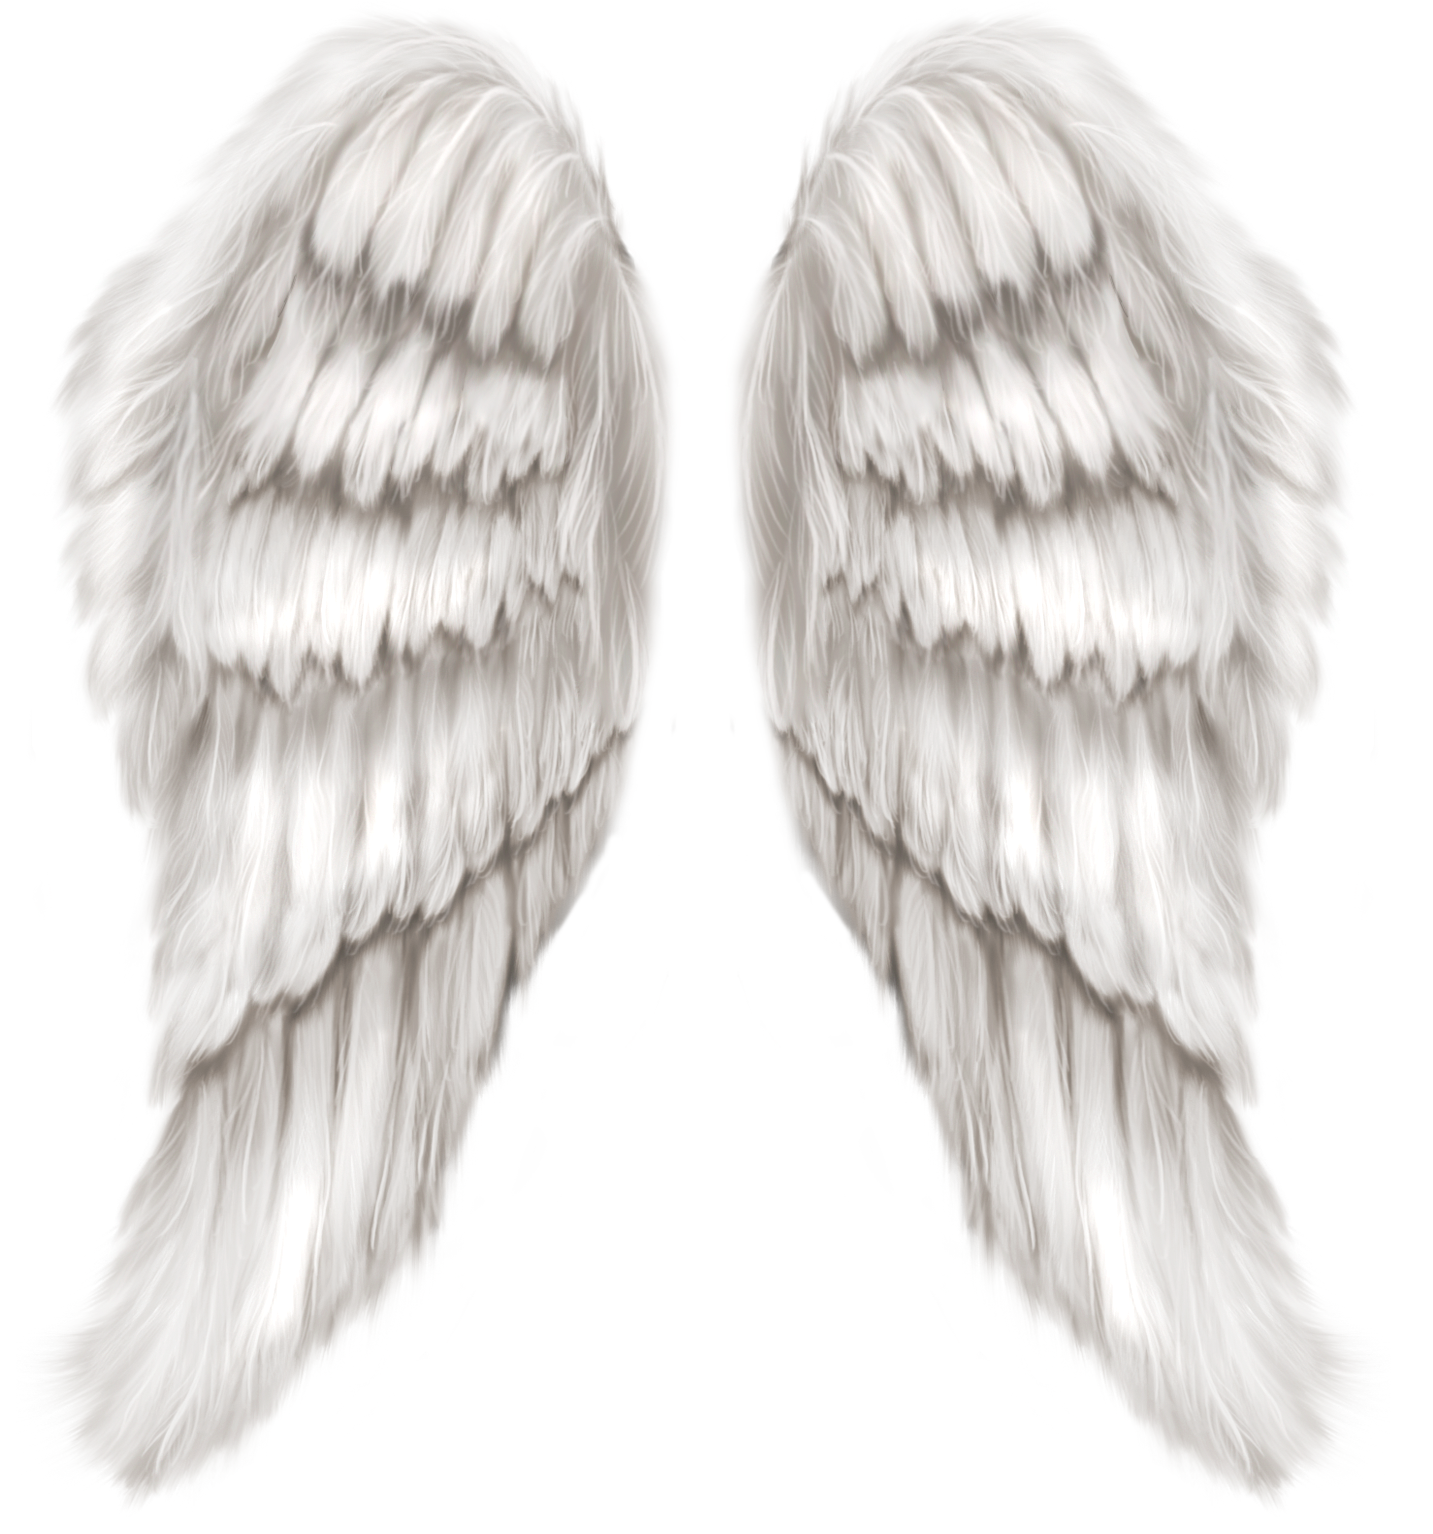 Heart with wings clipart black and white picture black and white download White Angel Wings Transparent PNG Clip Art Image | Gallery ... picture black and white download